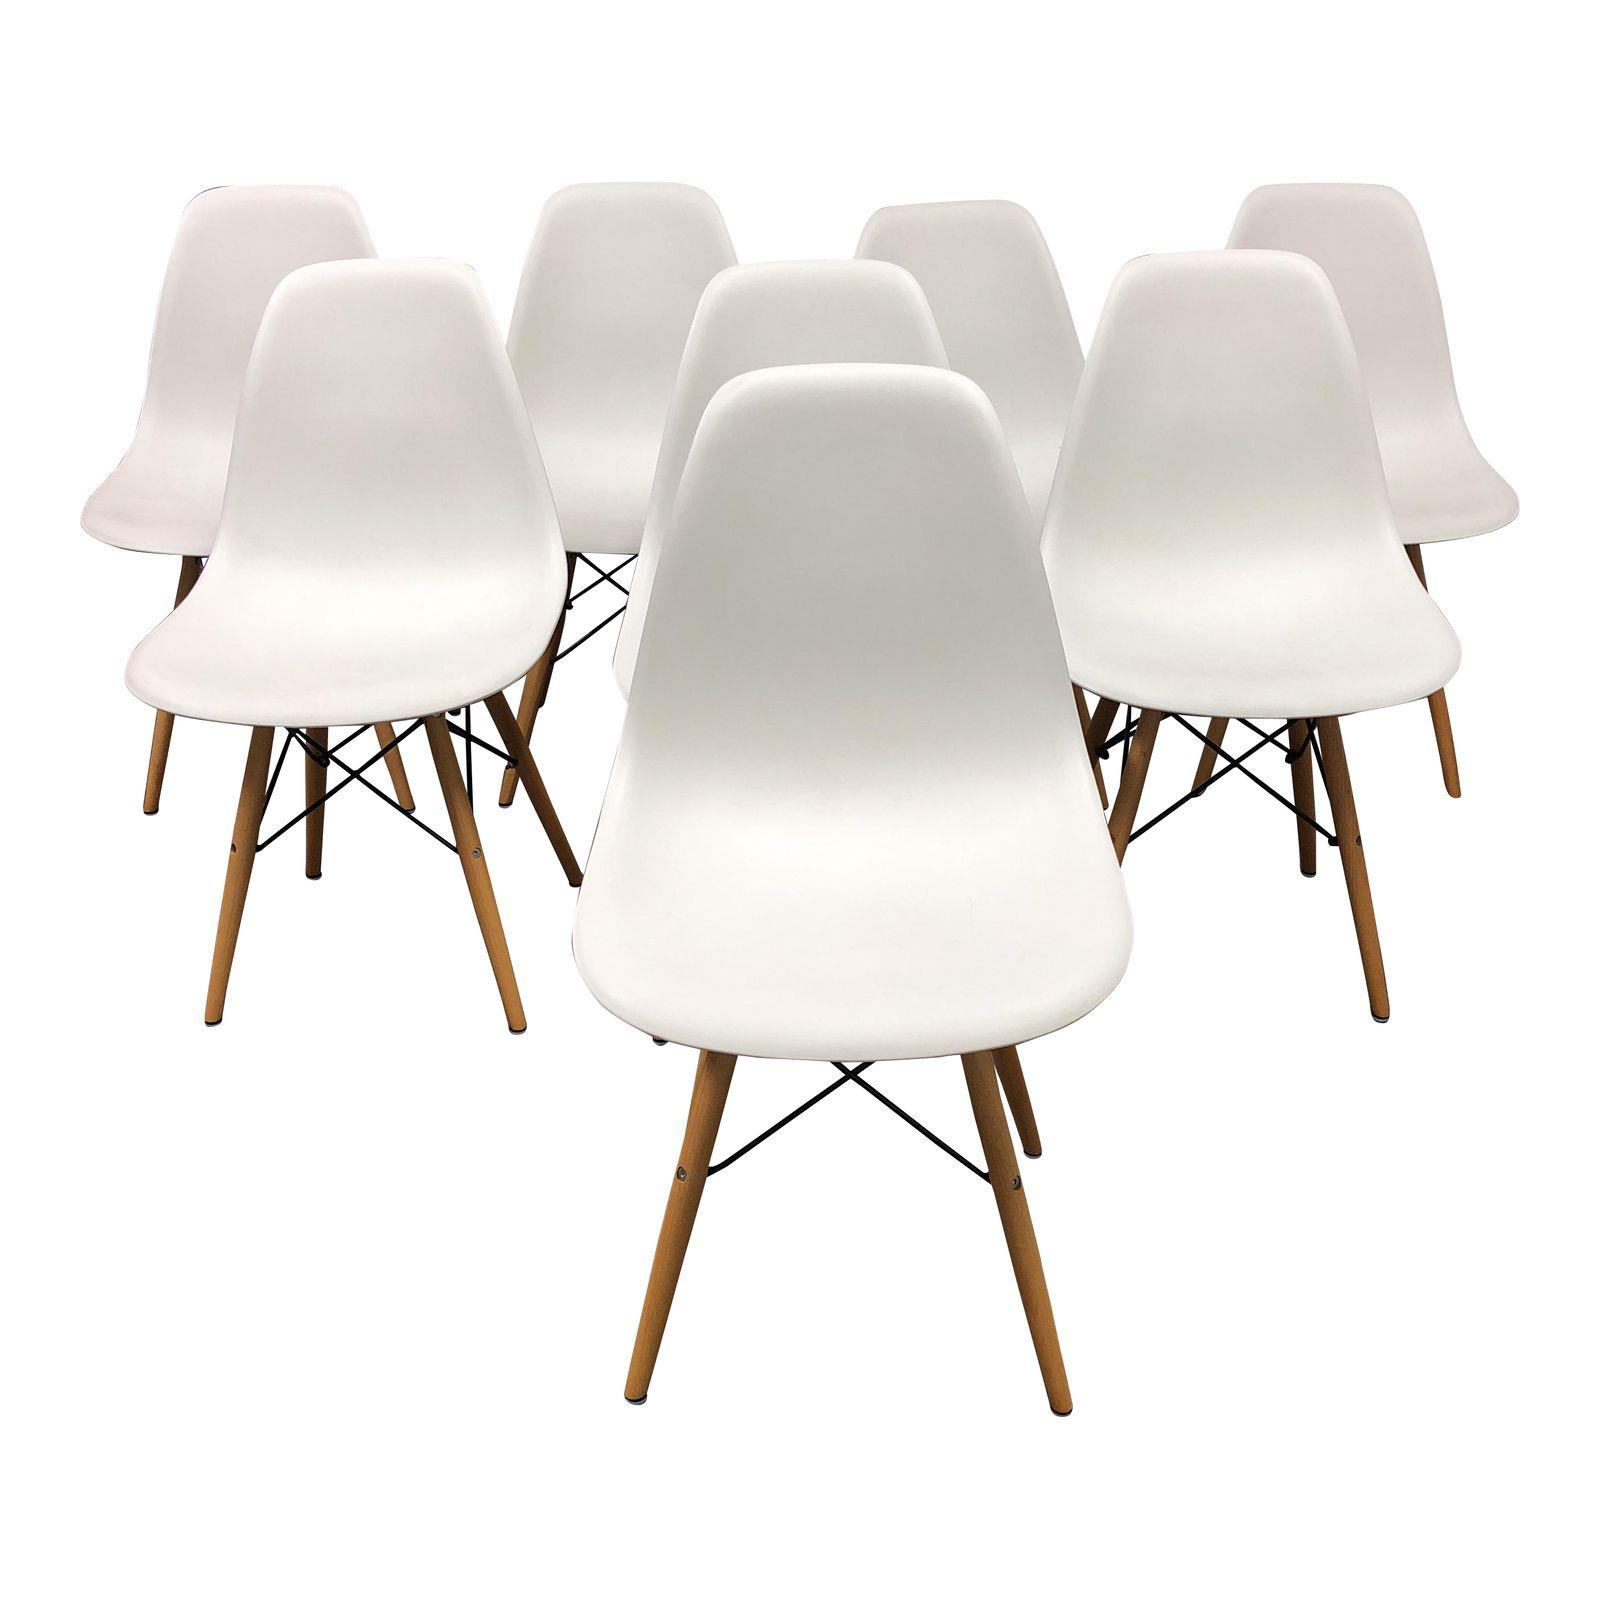 Eames Style White Molded Eiffel Chairs Set of 8 Design Plus